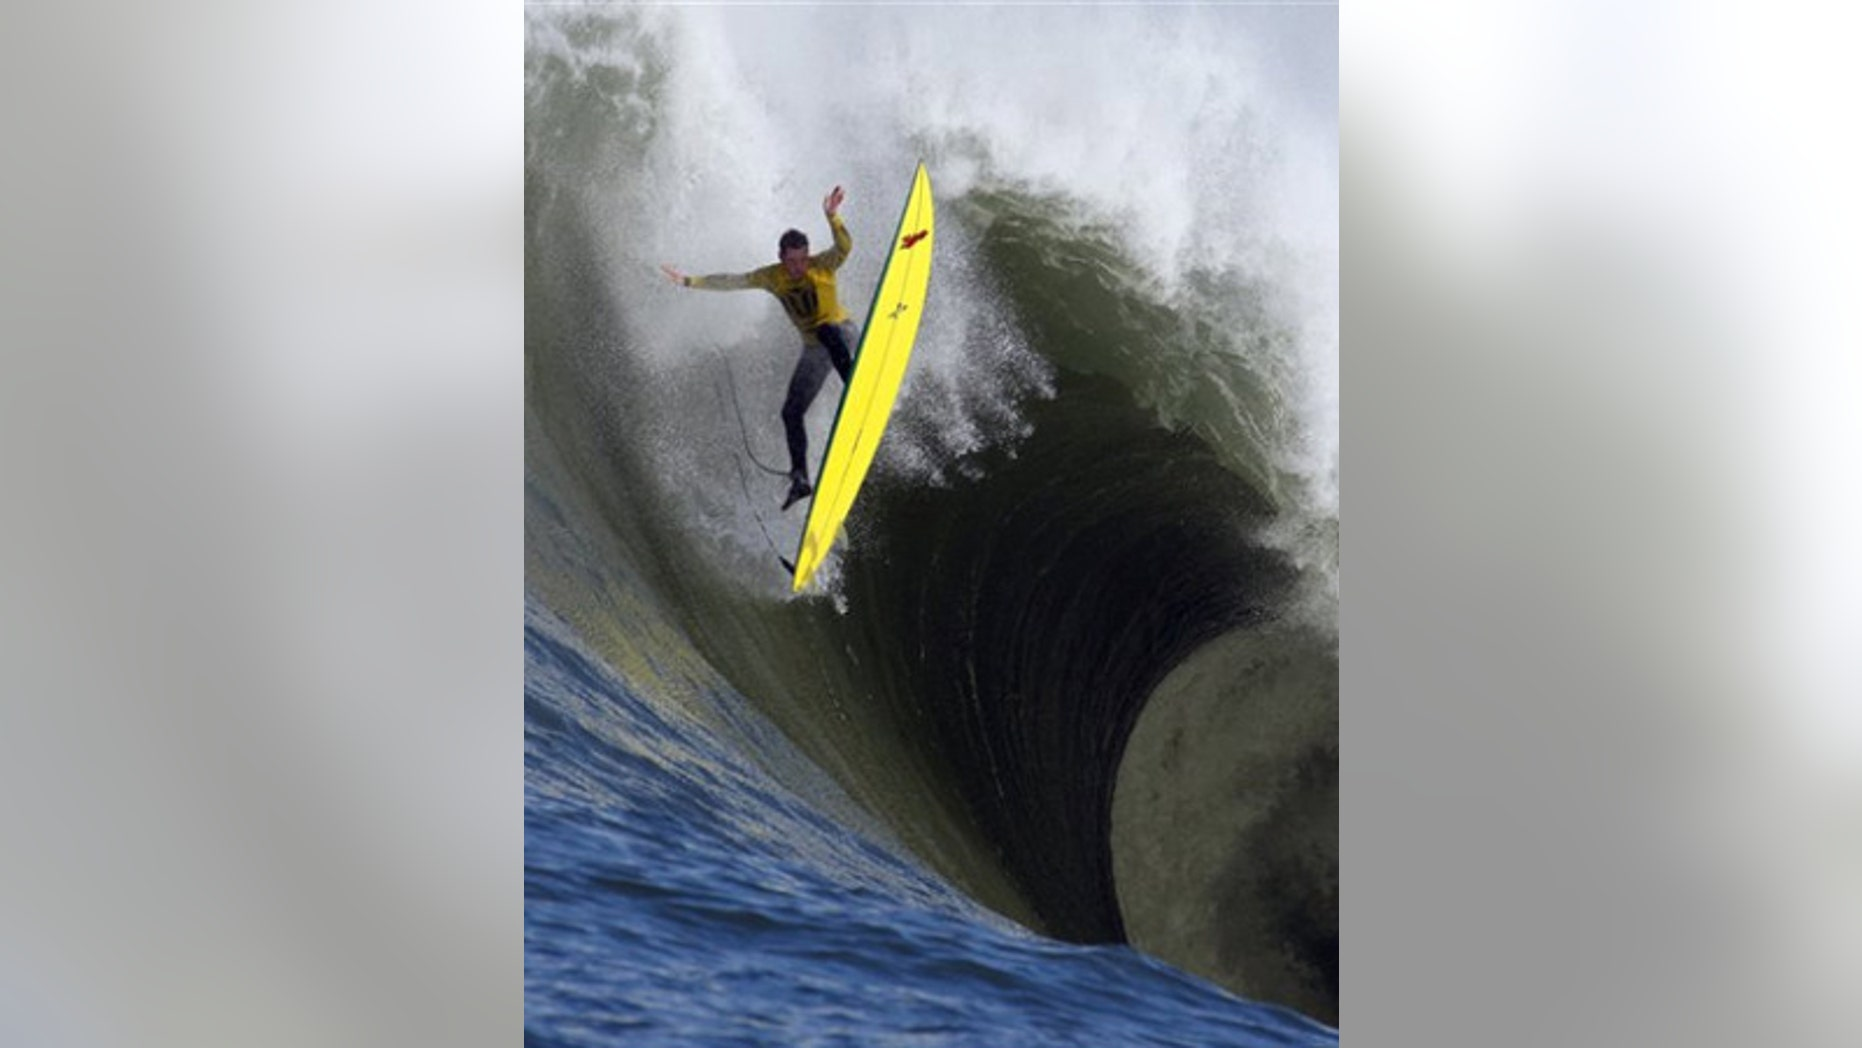 Feb. 13: Ion Banner loses control on a giant wave during the first heat of the Mavericks surfing contest in Half Moon Bay, Calif.